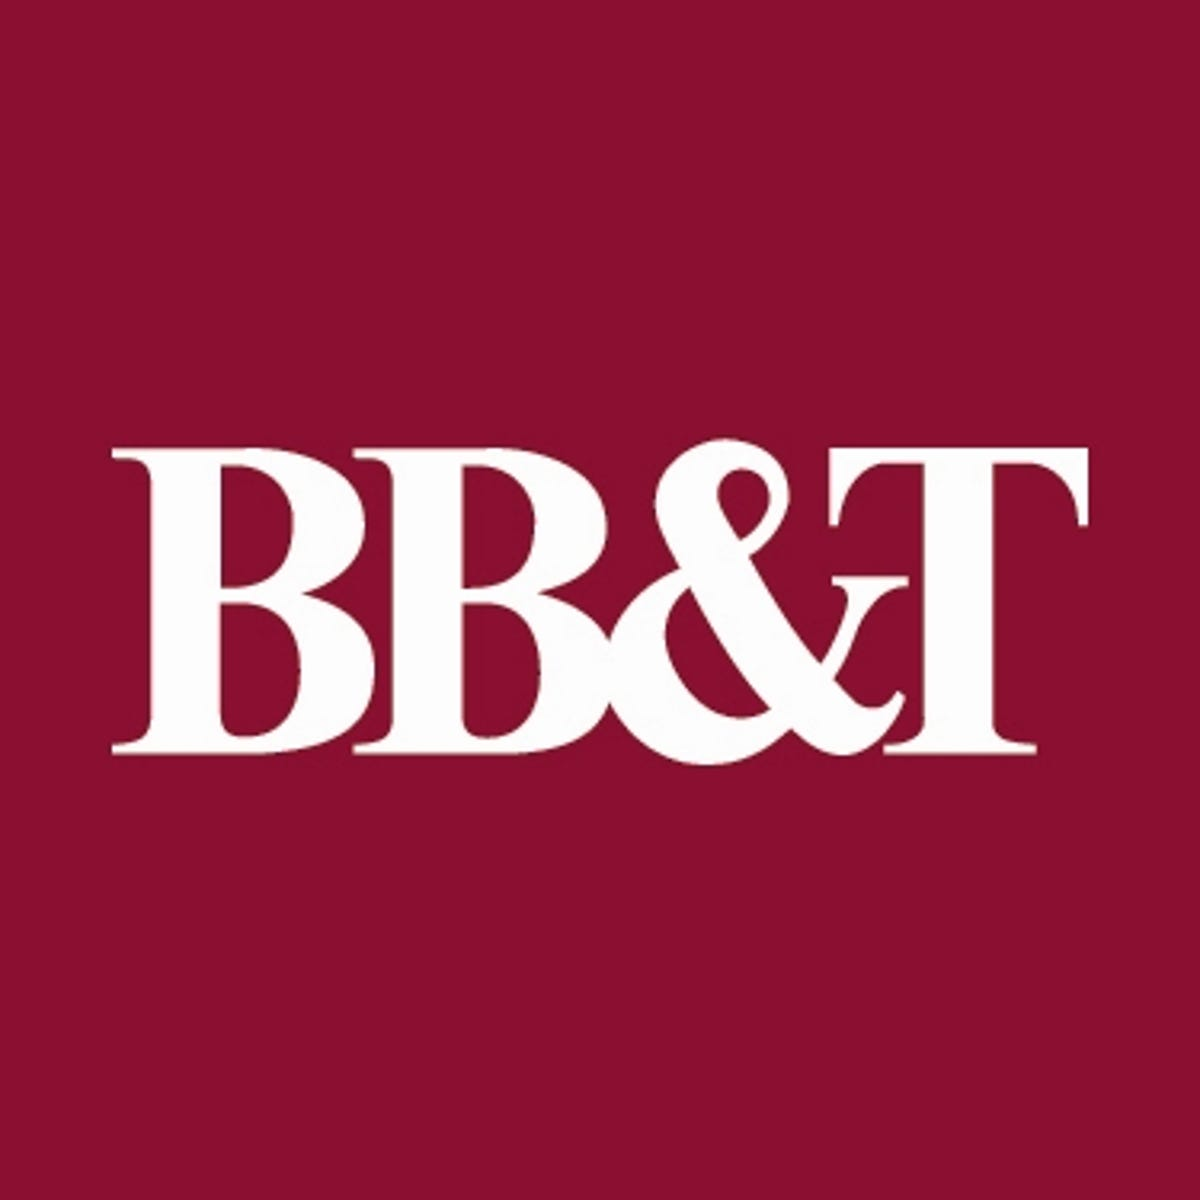 BB&T, SunTrust merger: $66 billion deal to create 6th largest US bank